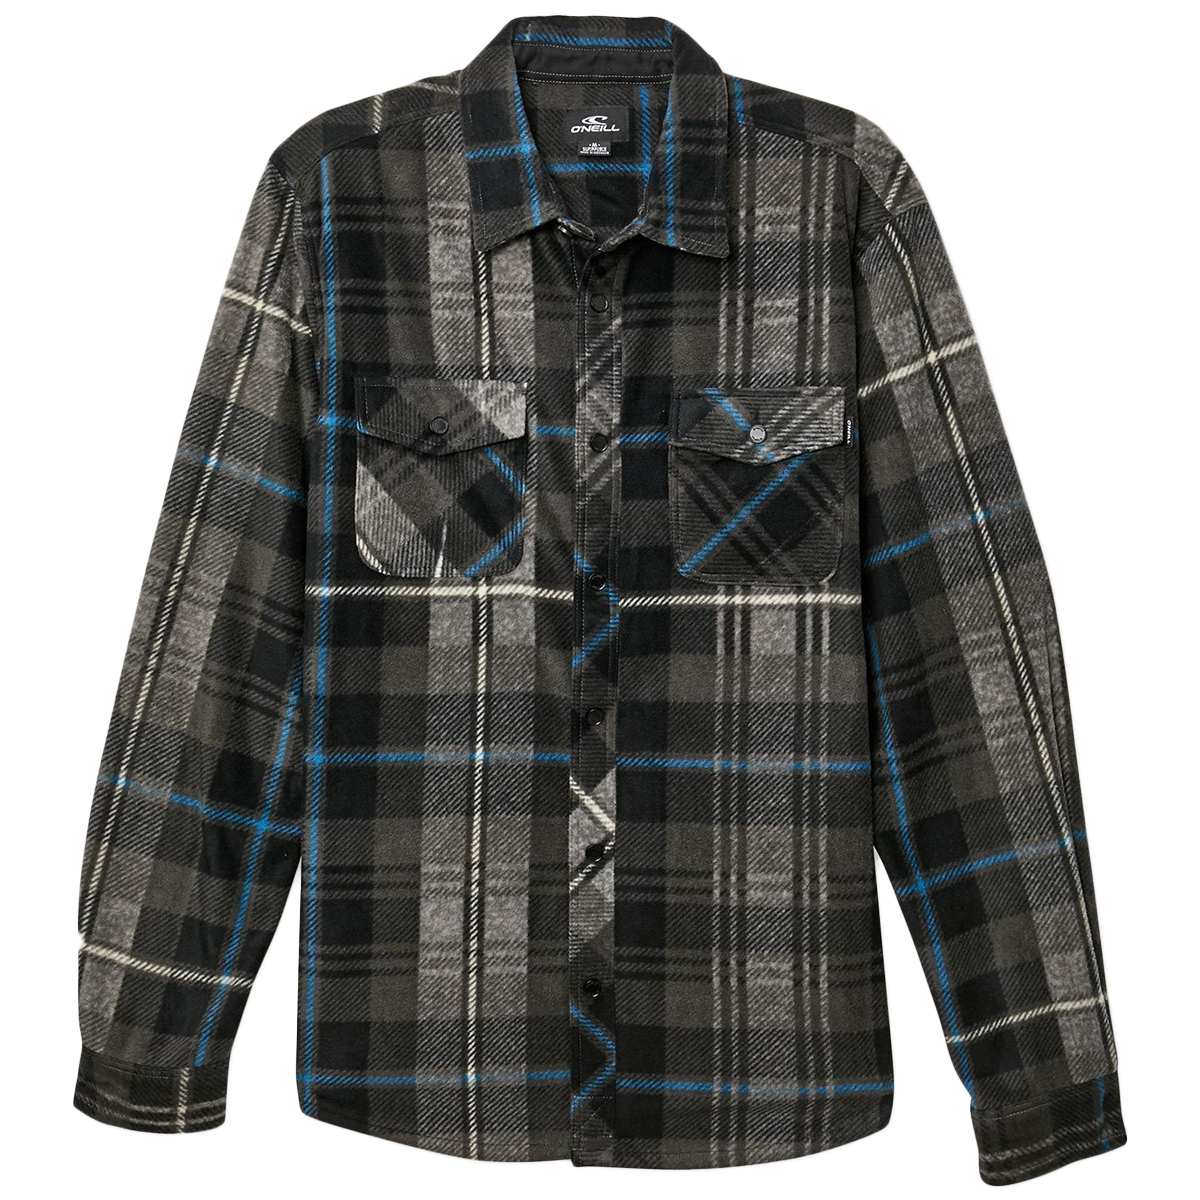 O'neill Men's Glacier Plaid Long-Sleeve Shirt - Black, XL